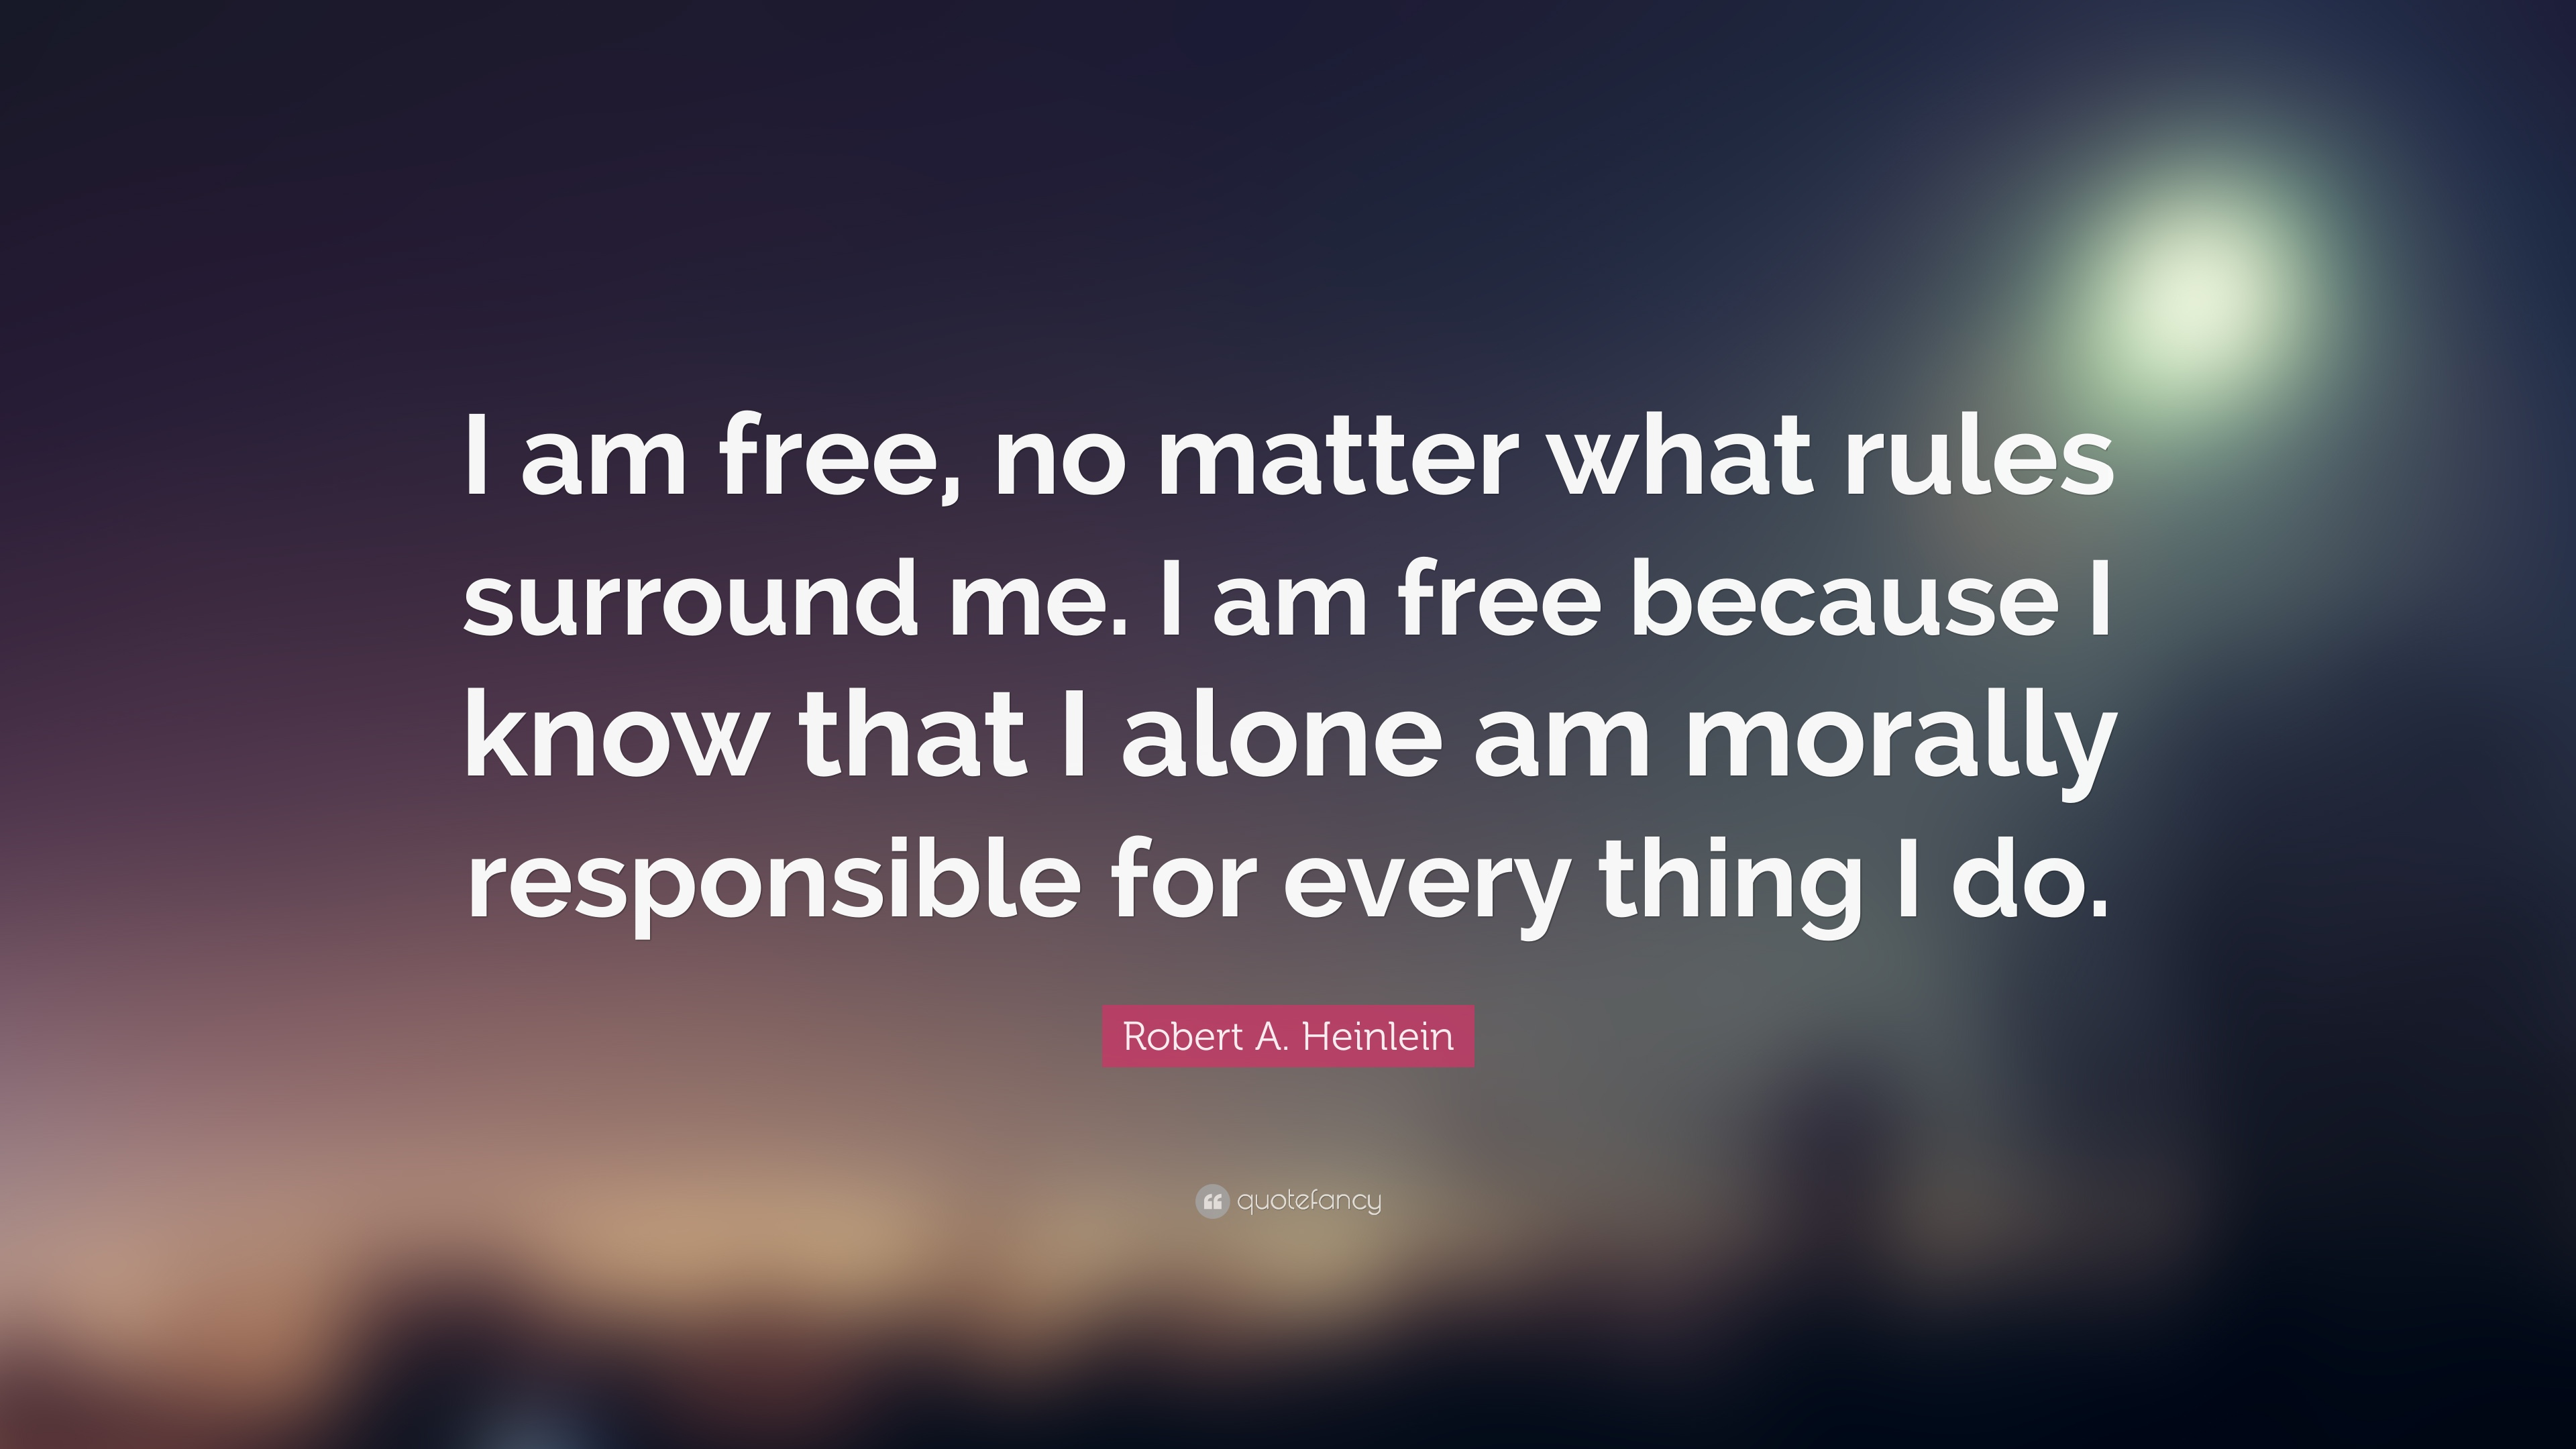 Robert A Heinlein Quote I Am Free No Matter What Rules Surround